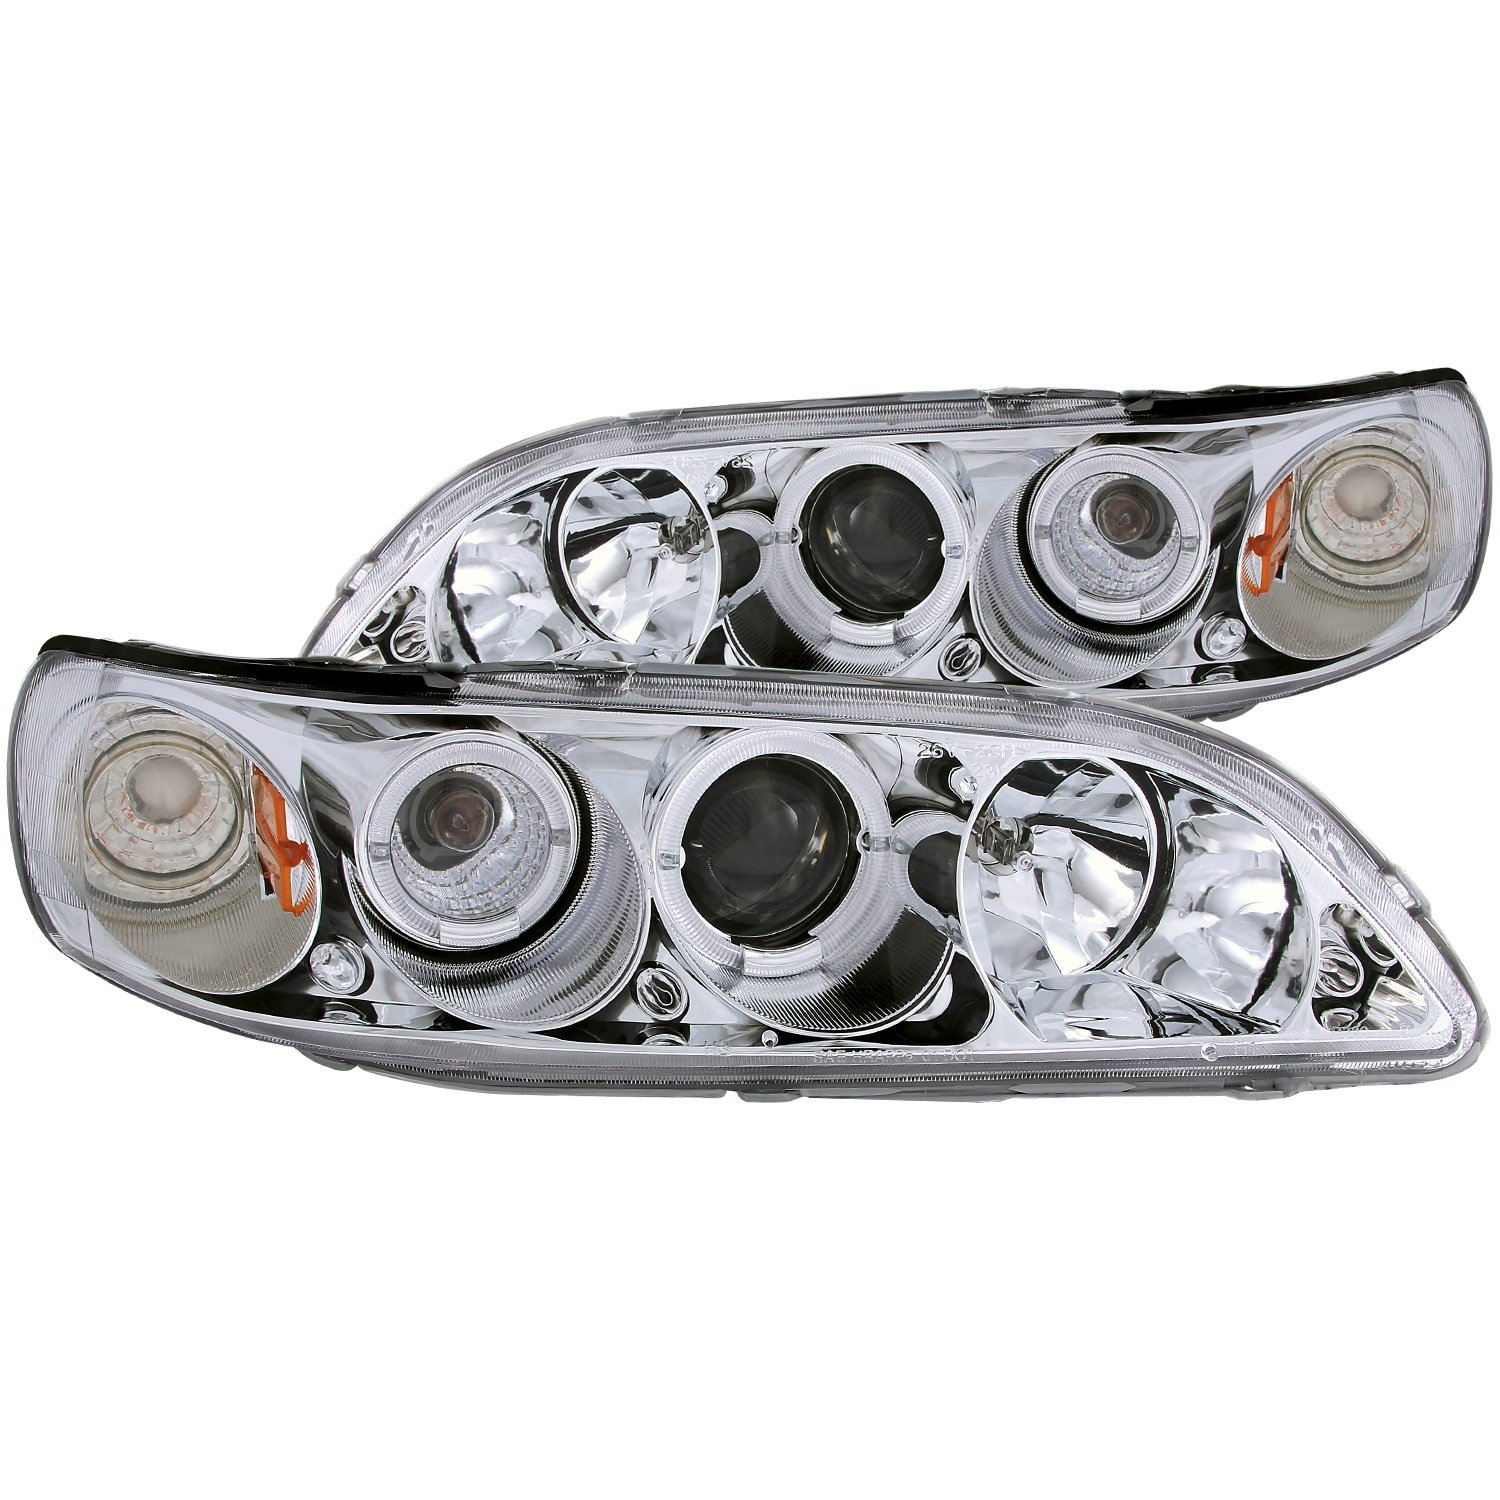 Sold in Pairs Anzo USA 121053 Honda Accord Projector with Halo Black Headlight Assembly